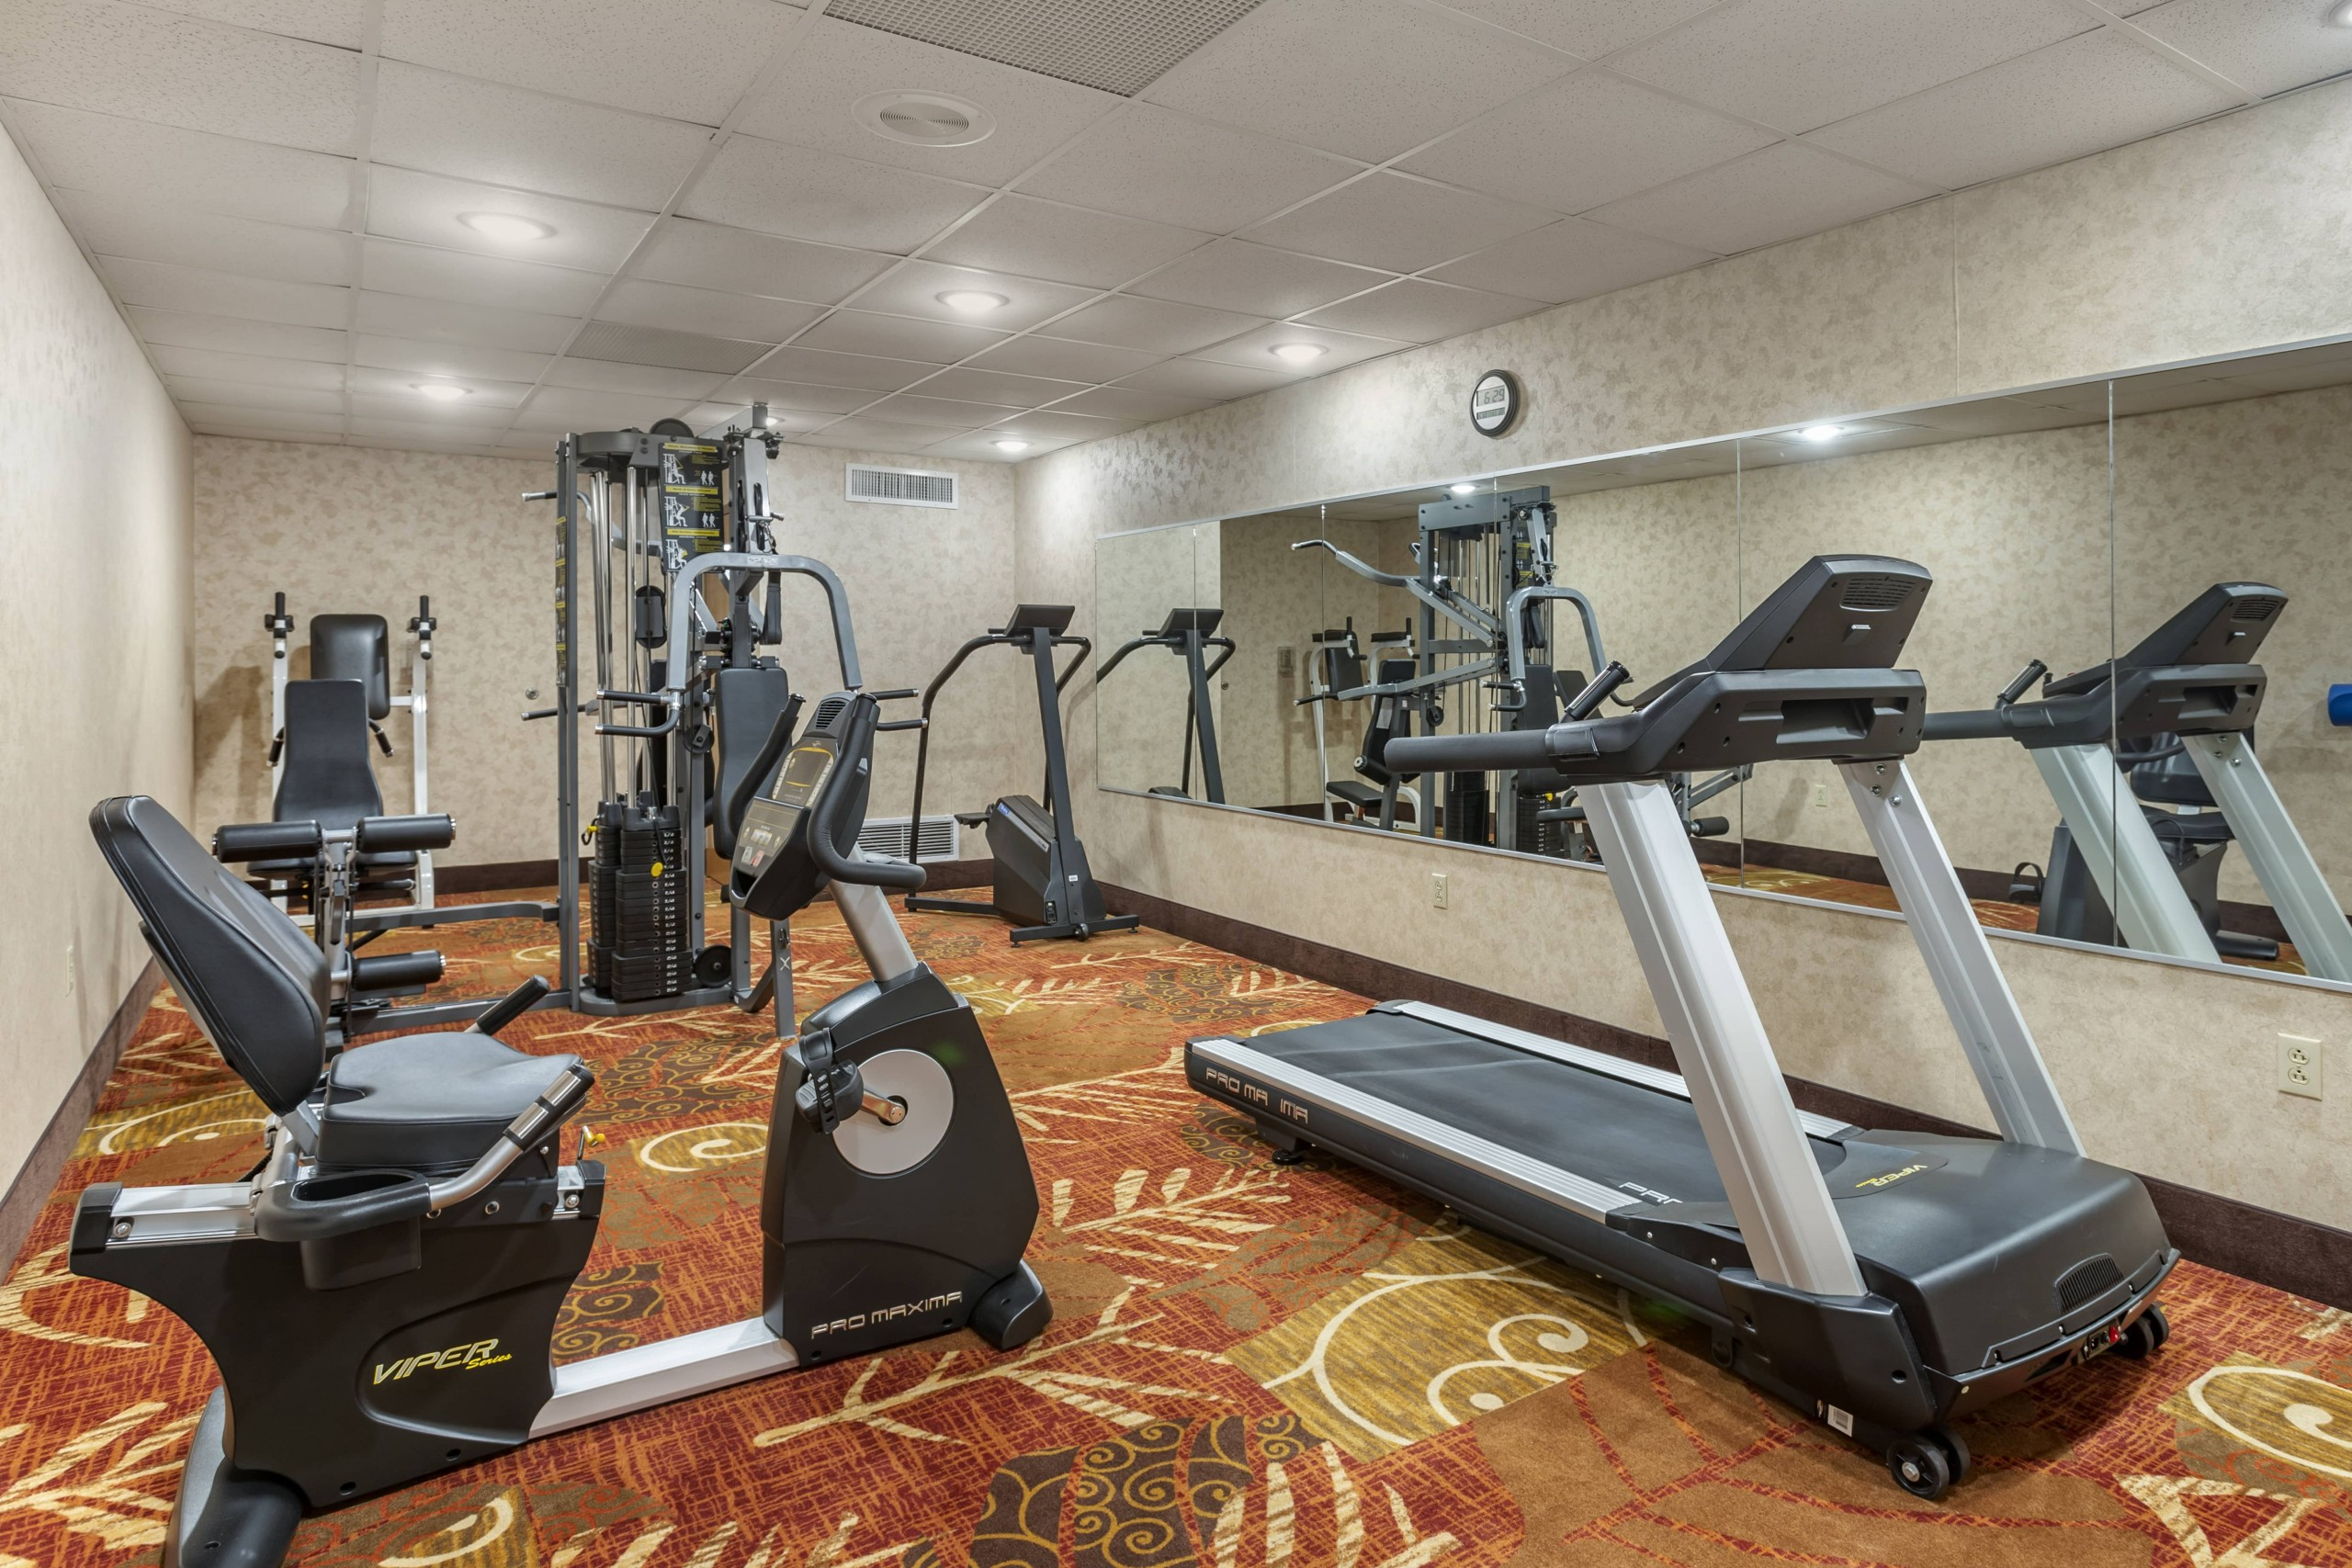 Branson Mo Comfort inn and suites Fitness Room